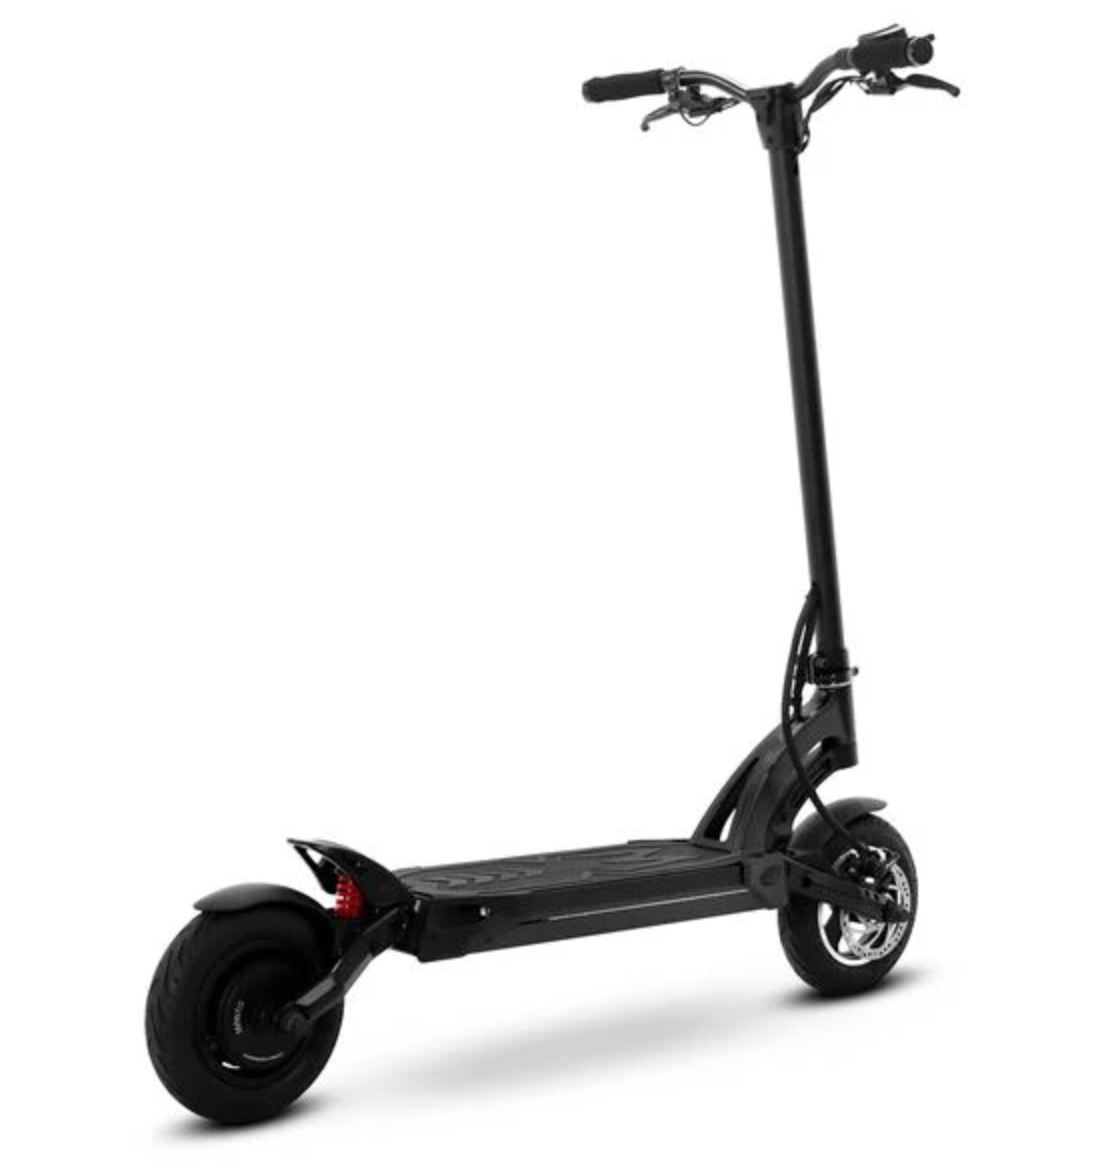 Kaabo Mantis Lite Electric Scooter